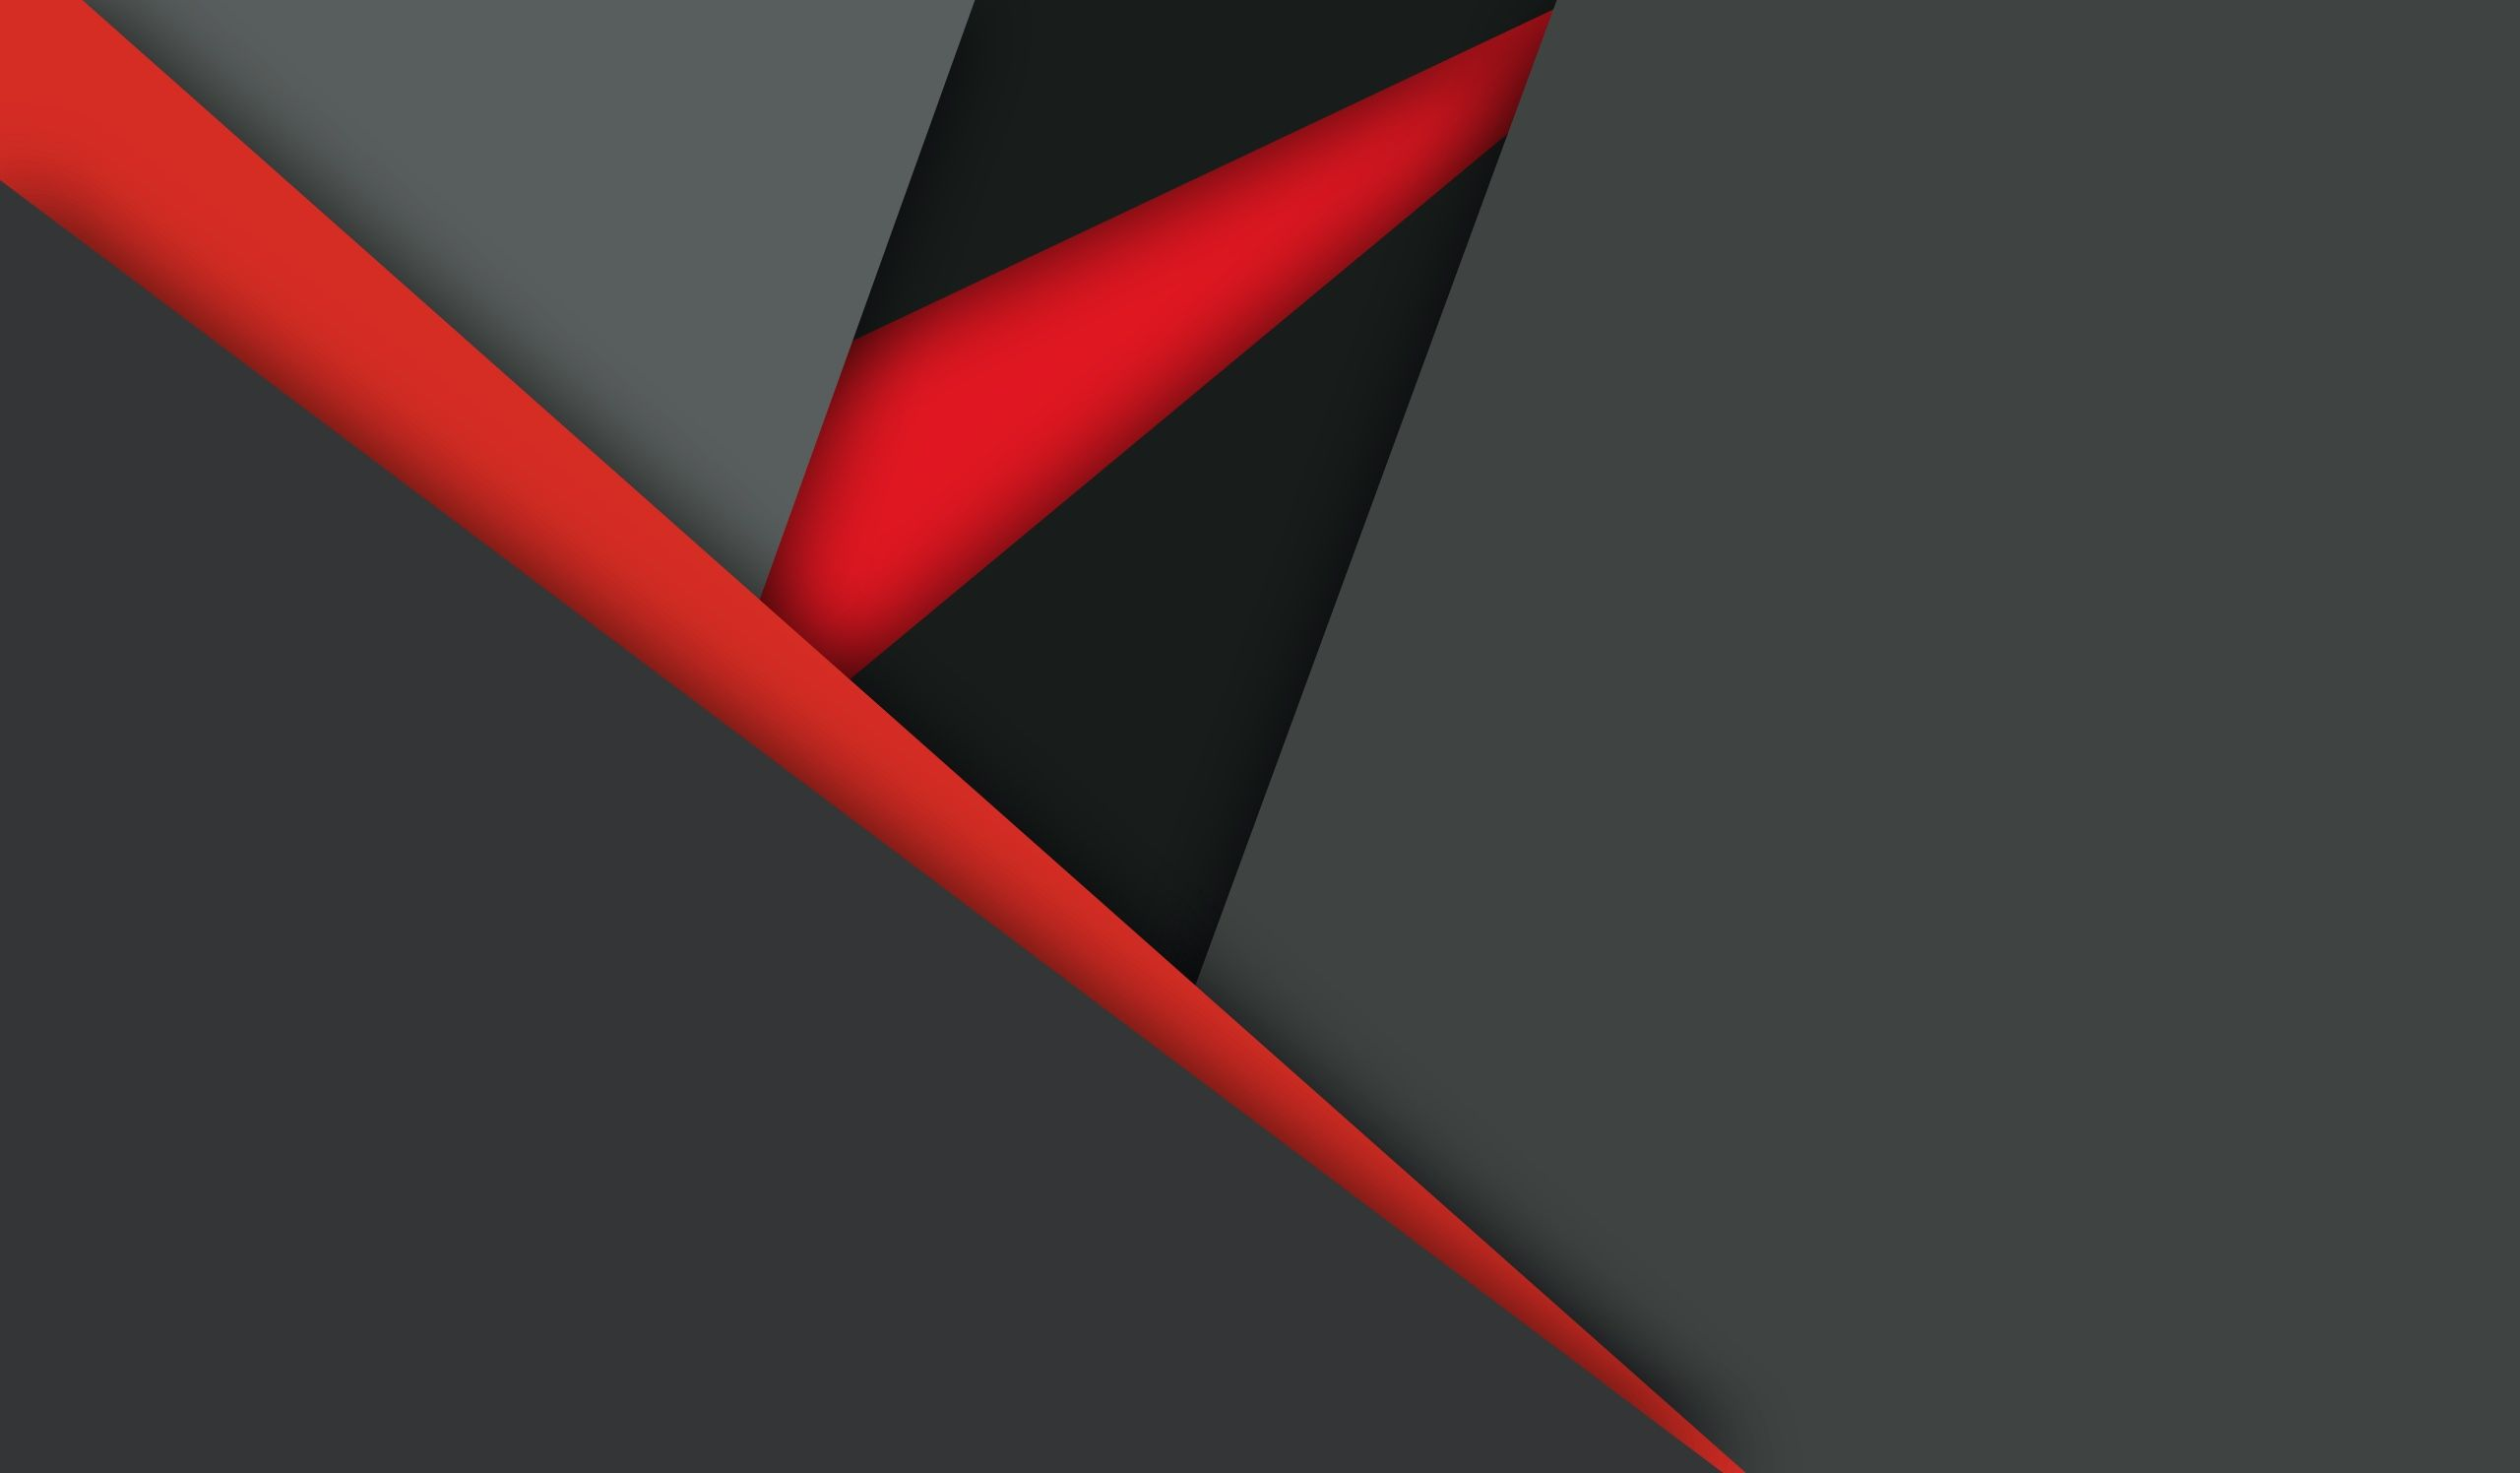 Red And Black Abstract Wallpapers On Wallpaperdog